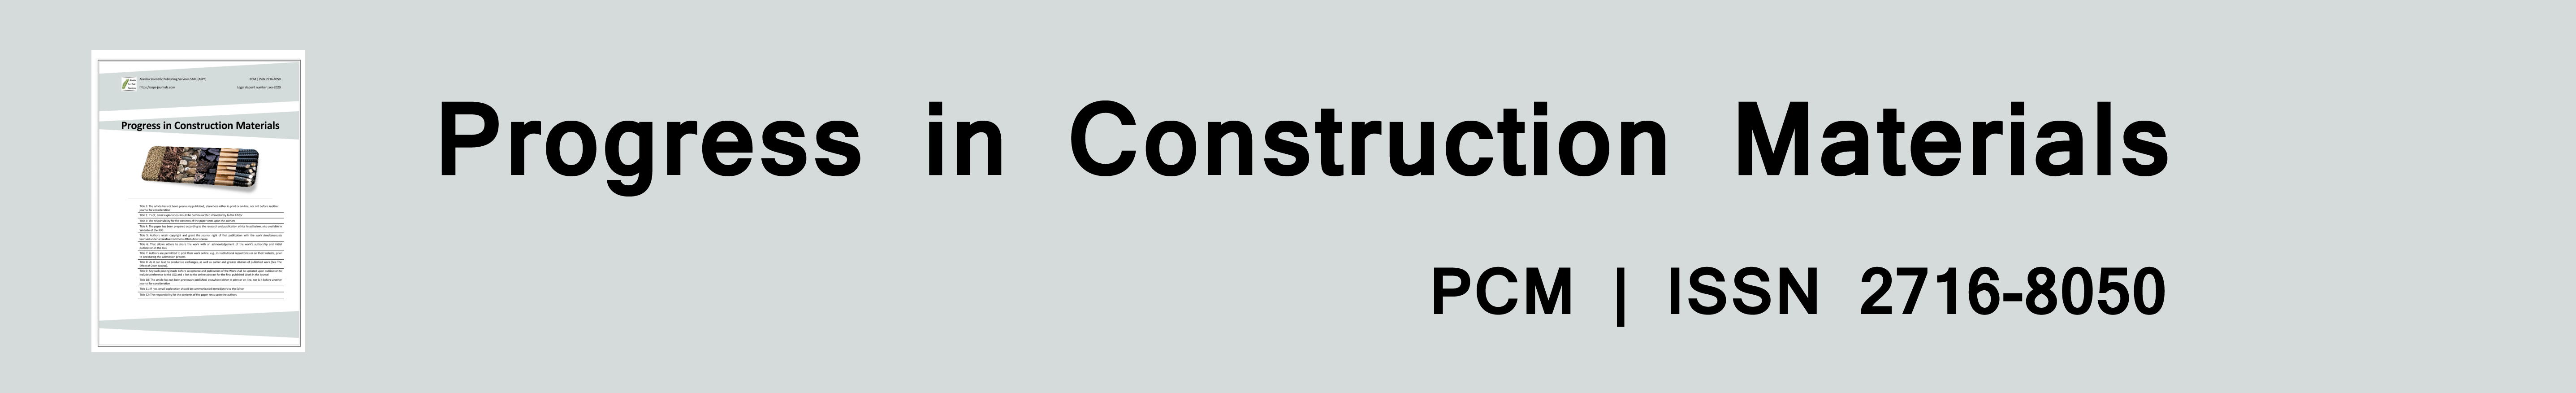 Progress in Construction Materials (PCM)